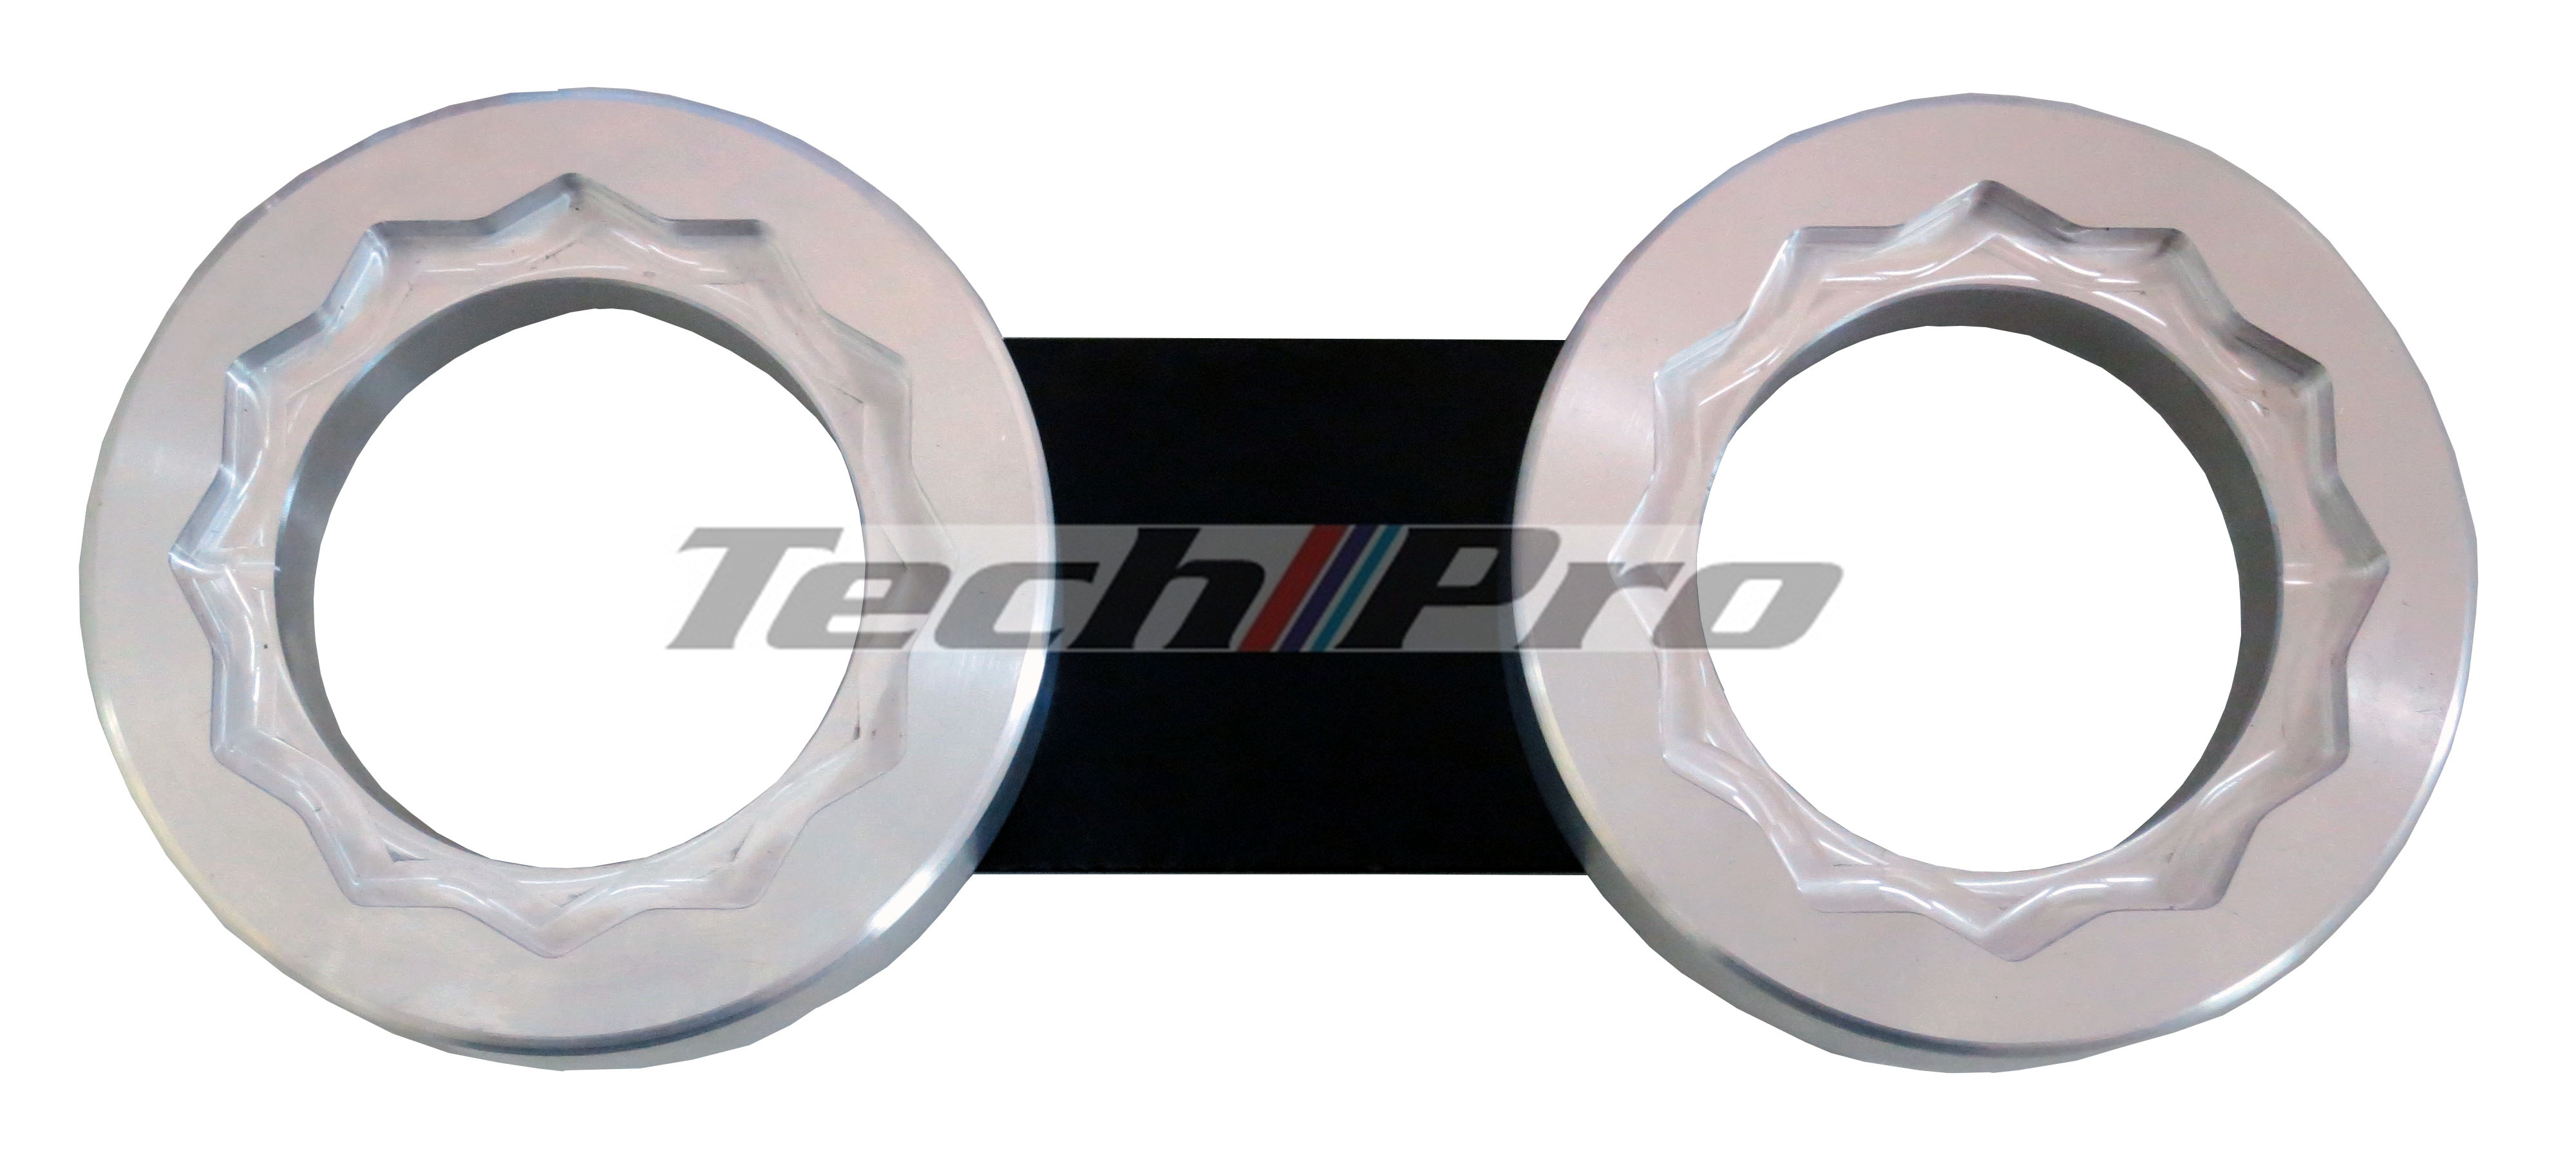 SU-010 - Subaru -Twin Cam Pulley Holder 6 & 12 Points Type